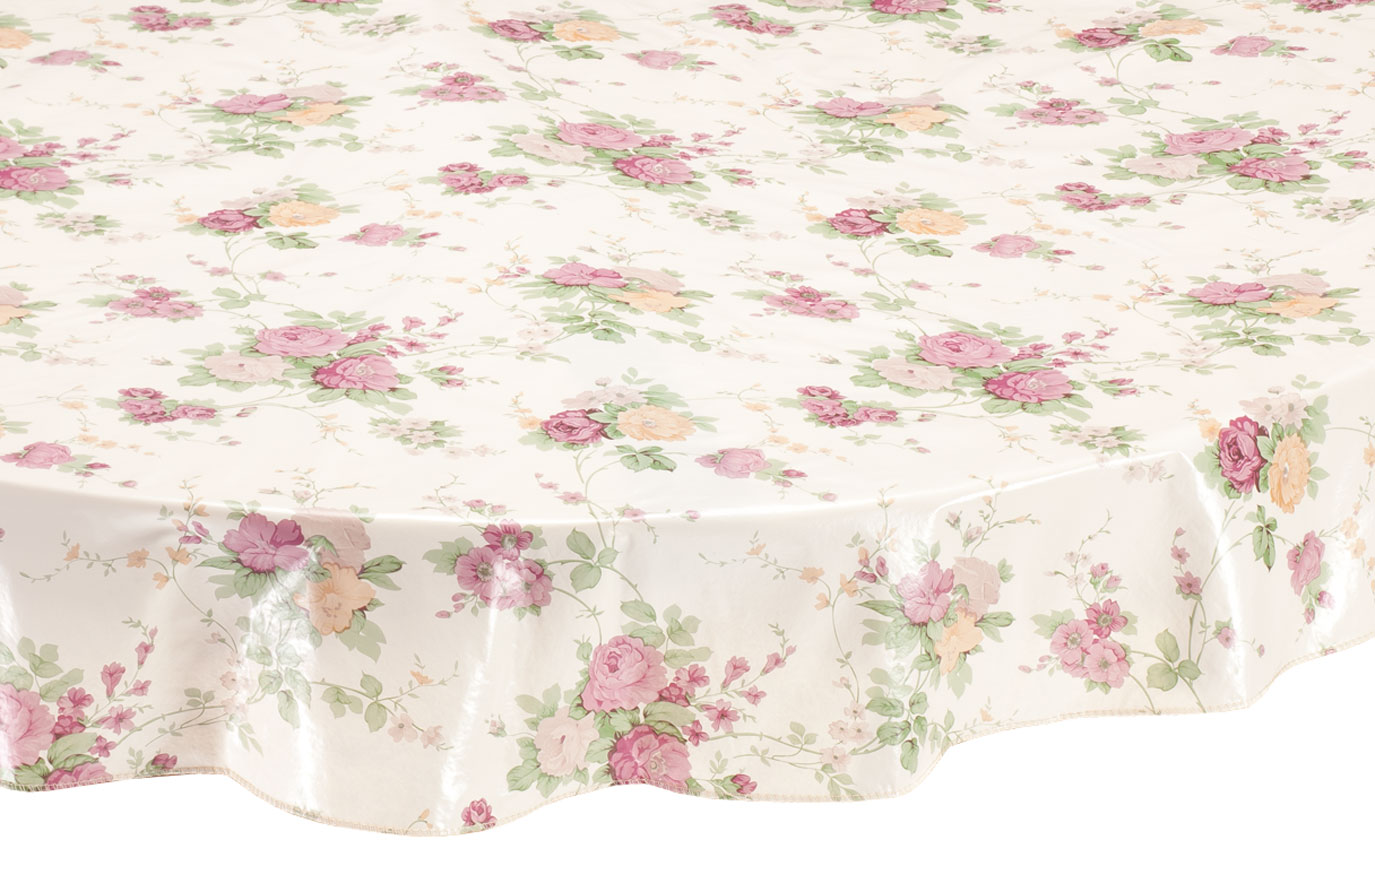 Vintage Floral Vinyl Tablecovers by Home-Style KitchenTM A soft, nostalgic floral design gives our tablecover vintage charm ... and this exclusive vintage floral vinyl elasticized tablecover by Home-Style KitchenTM is beautiful and practical in premium, spill-proof vinyl. The durable vinyl table cover with soft flannel backing protects table surfaces from moisture, stains and scratches--simply wiping clean, meal after meal. Specify size code. Specify color: lt. blue or beige. Imported.